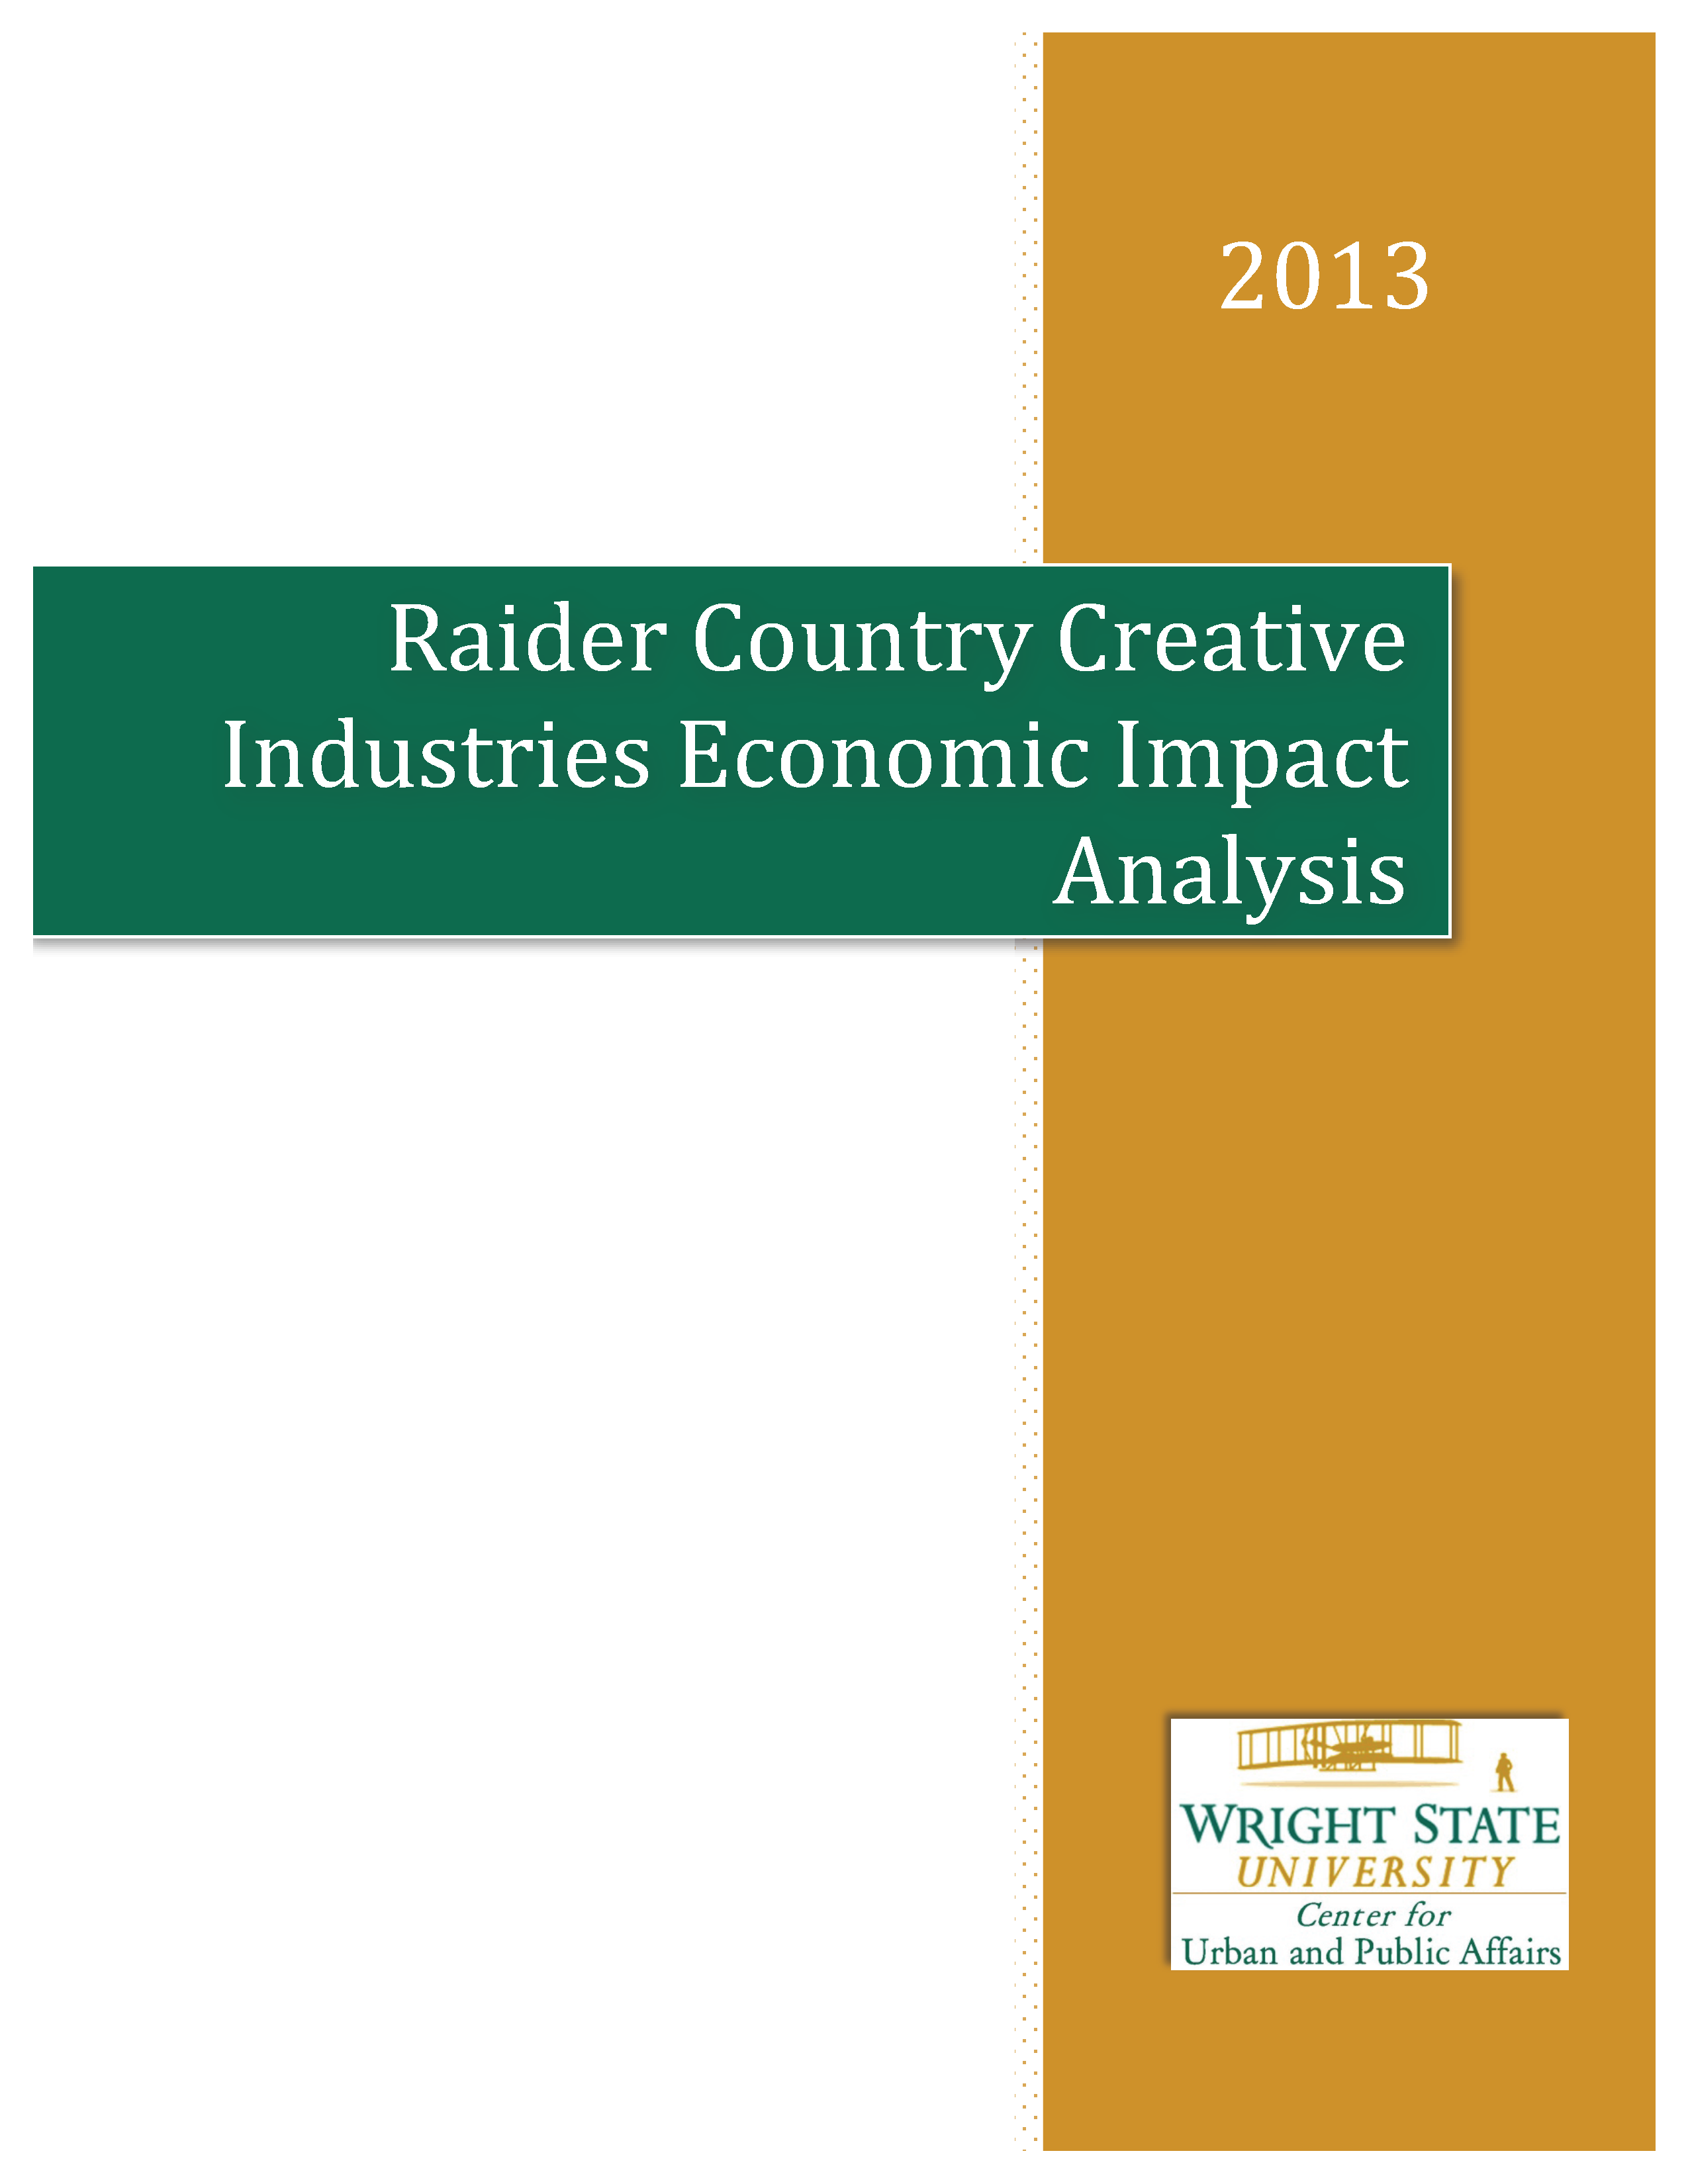 2013 Raider Country Creative Industries Economic Impact Analysis Report_Cover.png